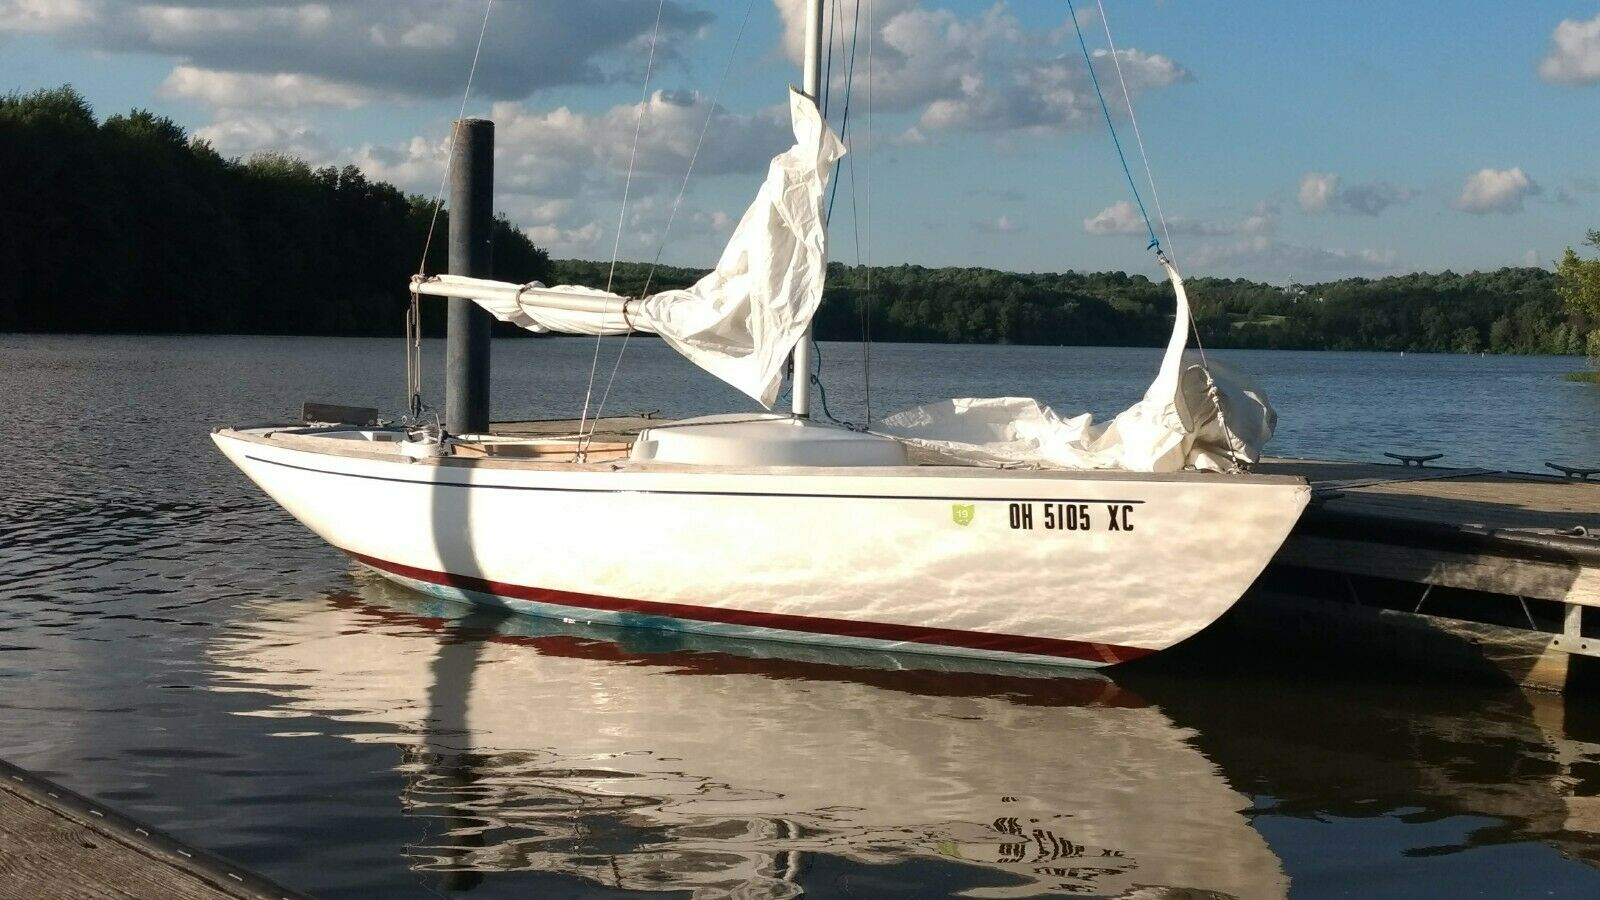 1977 McVay Minuet Sailboat with Trailer